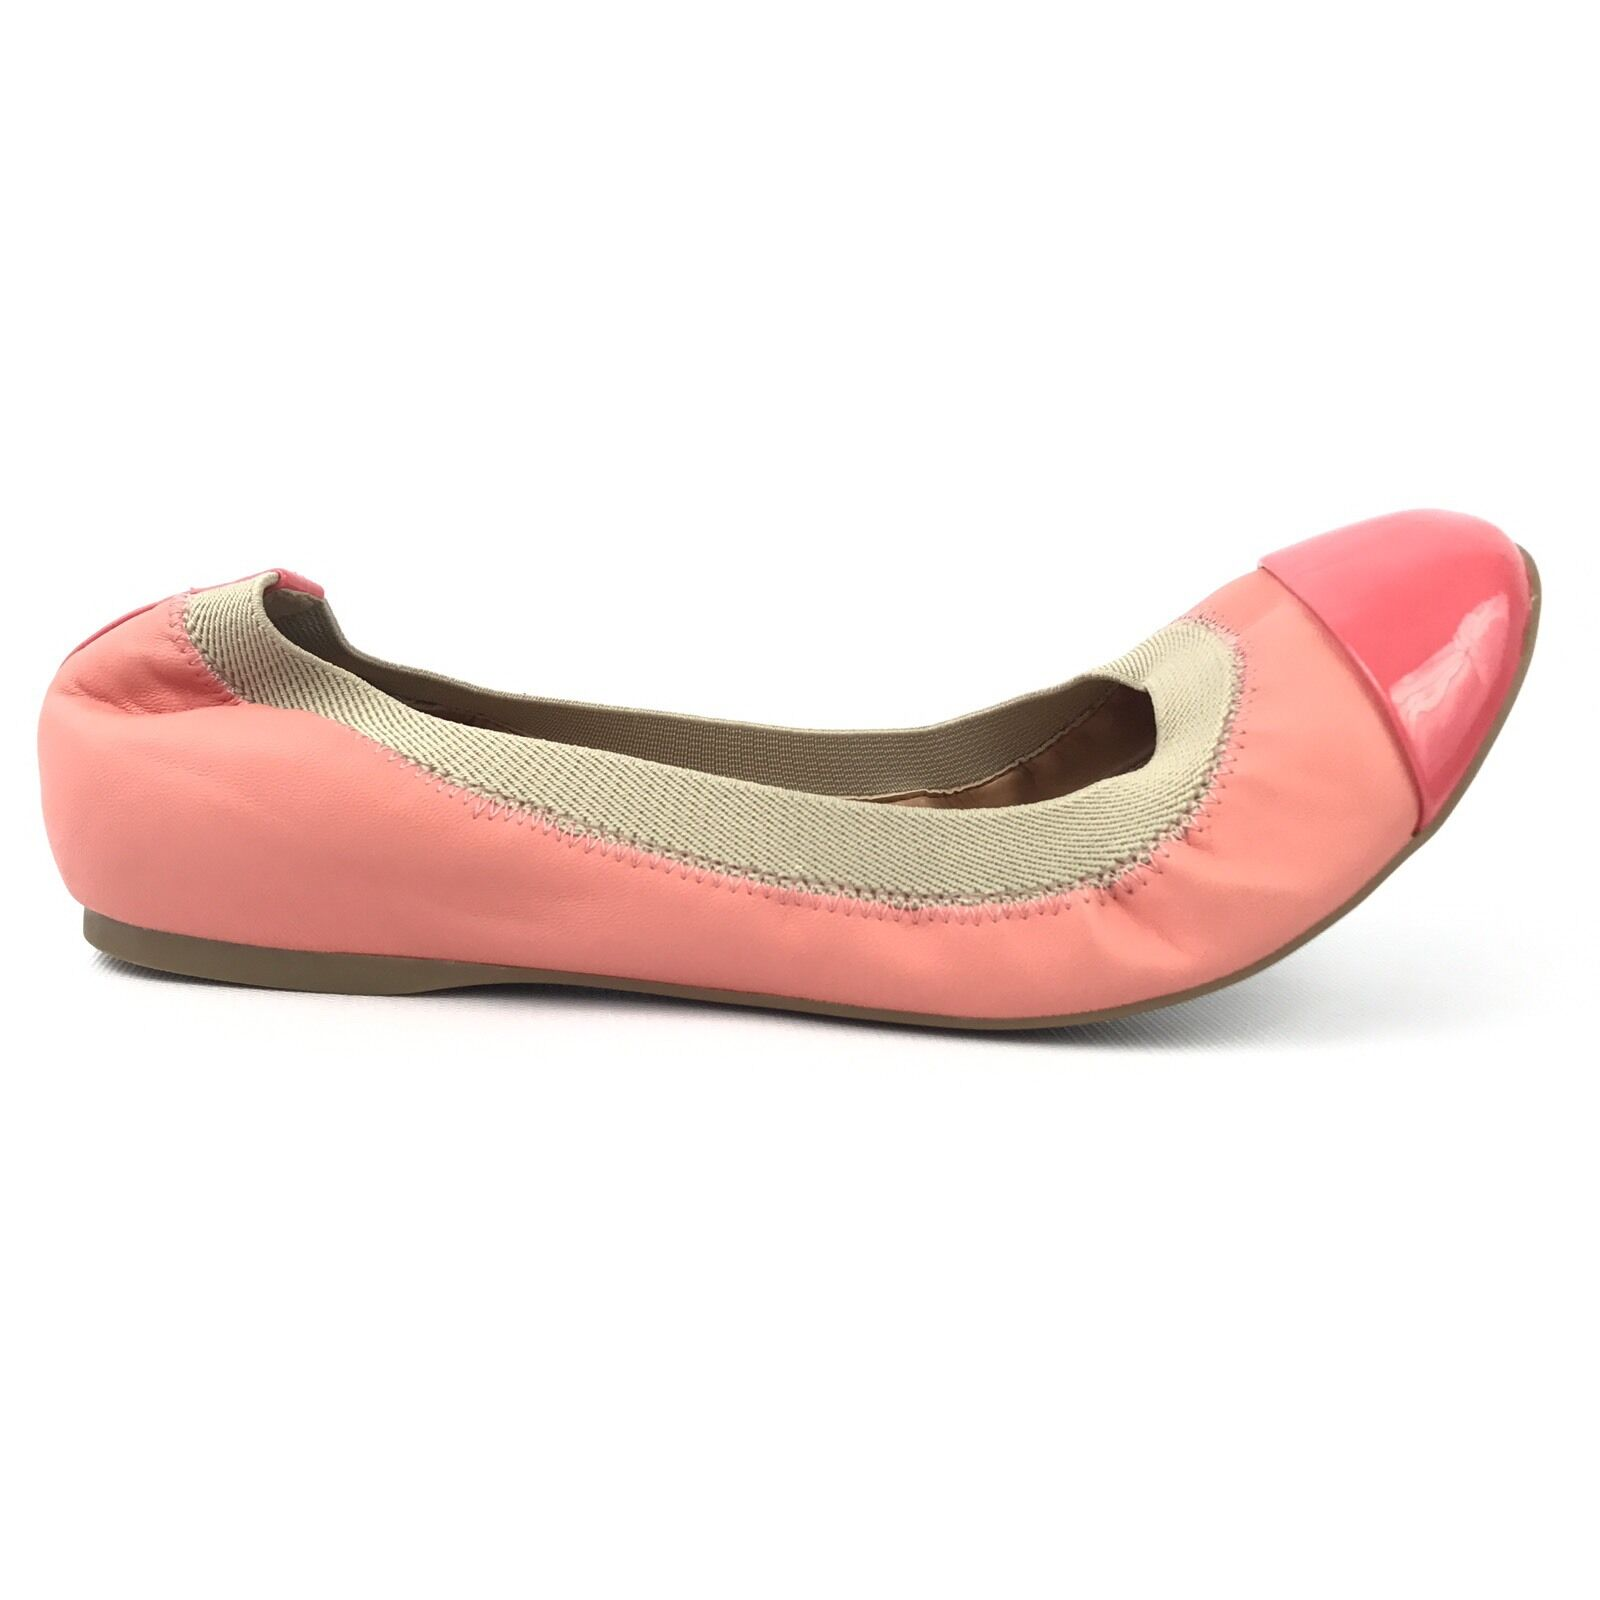 J Crew Flats 8.5 Ballet Round Toe Slip On Elastic Leather Coral Rubber Bottom